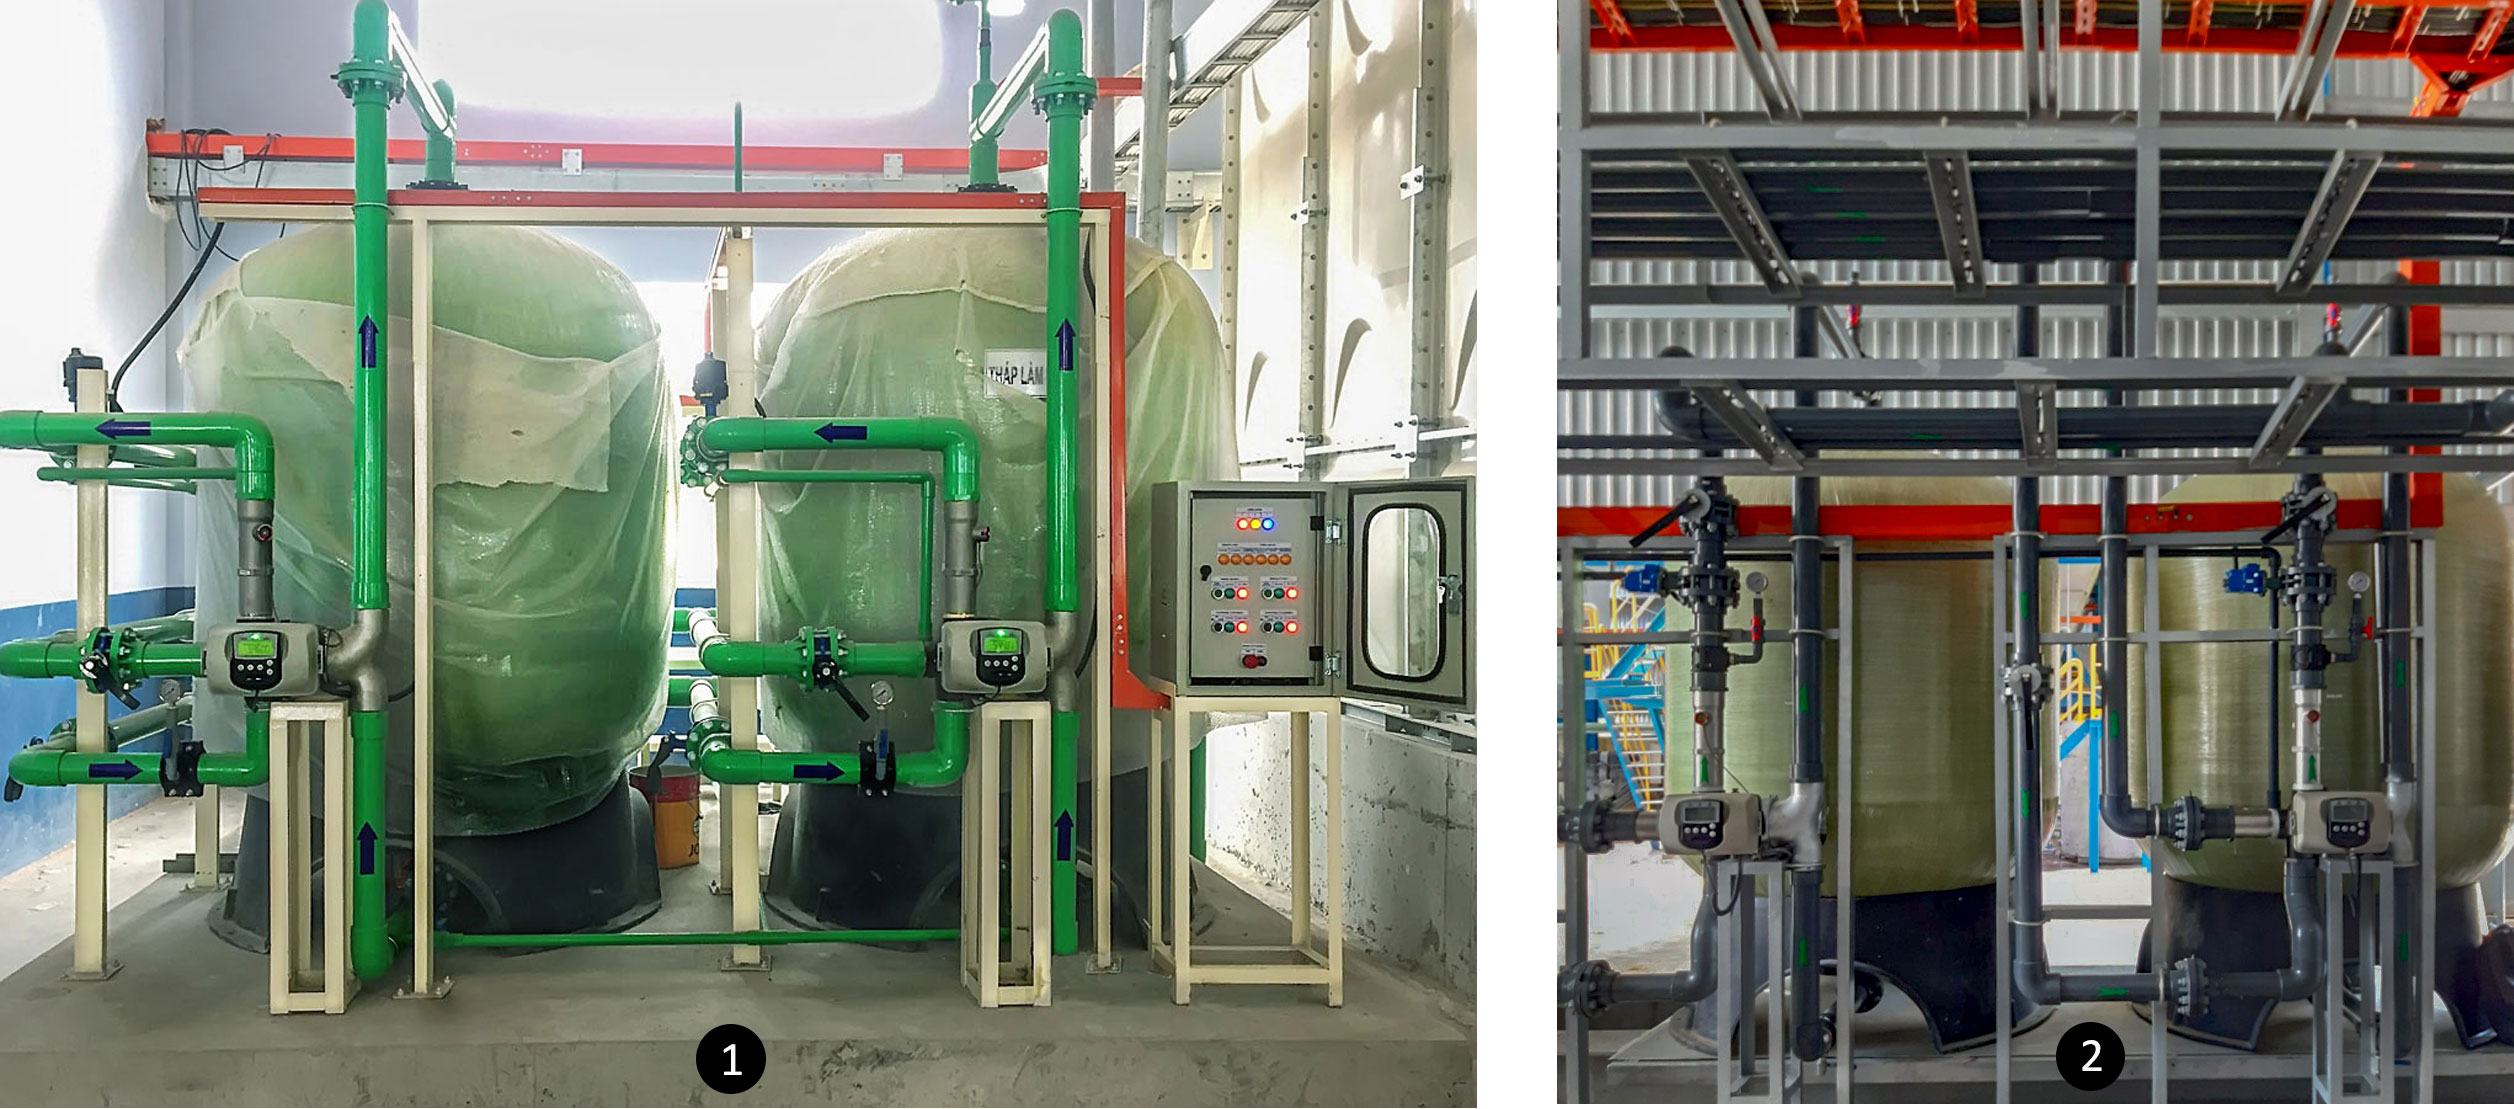 Both regenerate on setted up volume to optimize operating costs